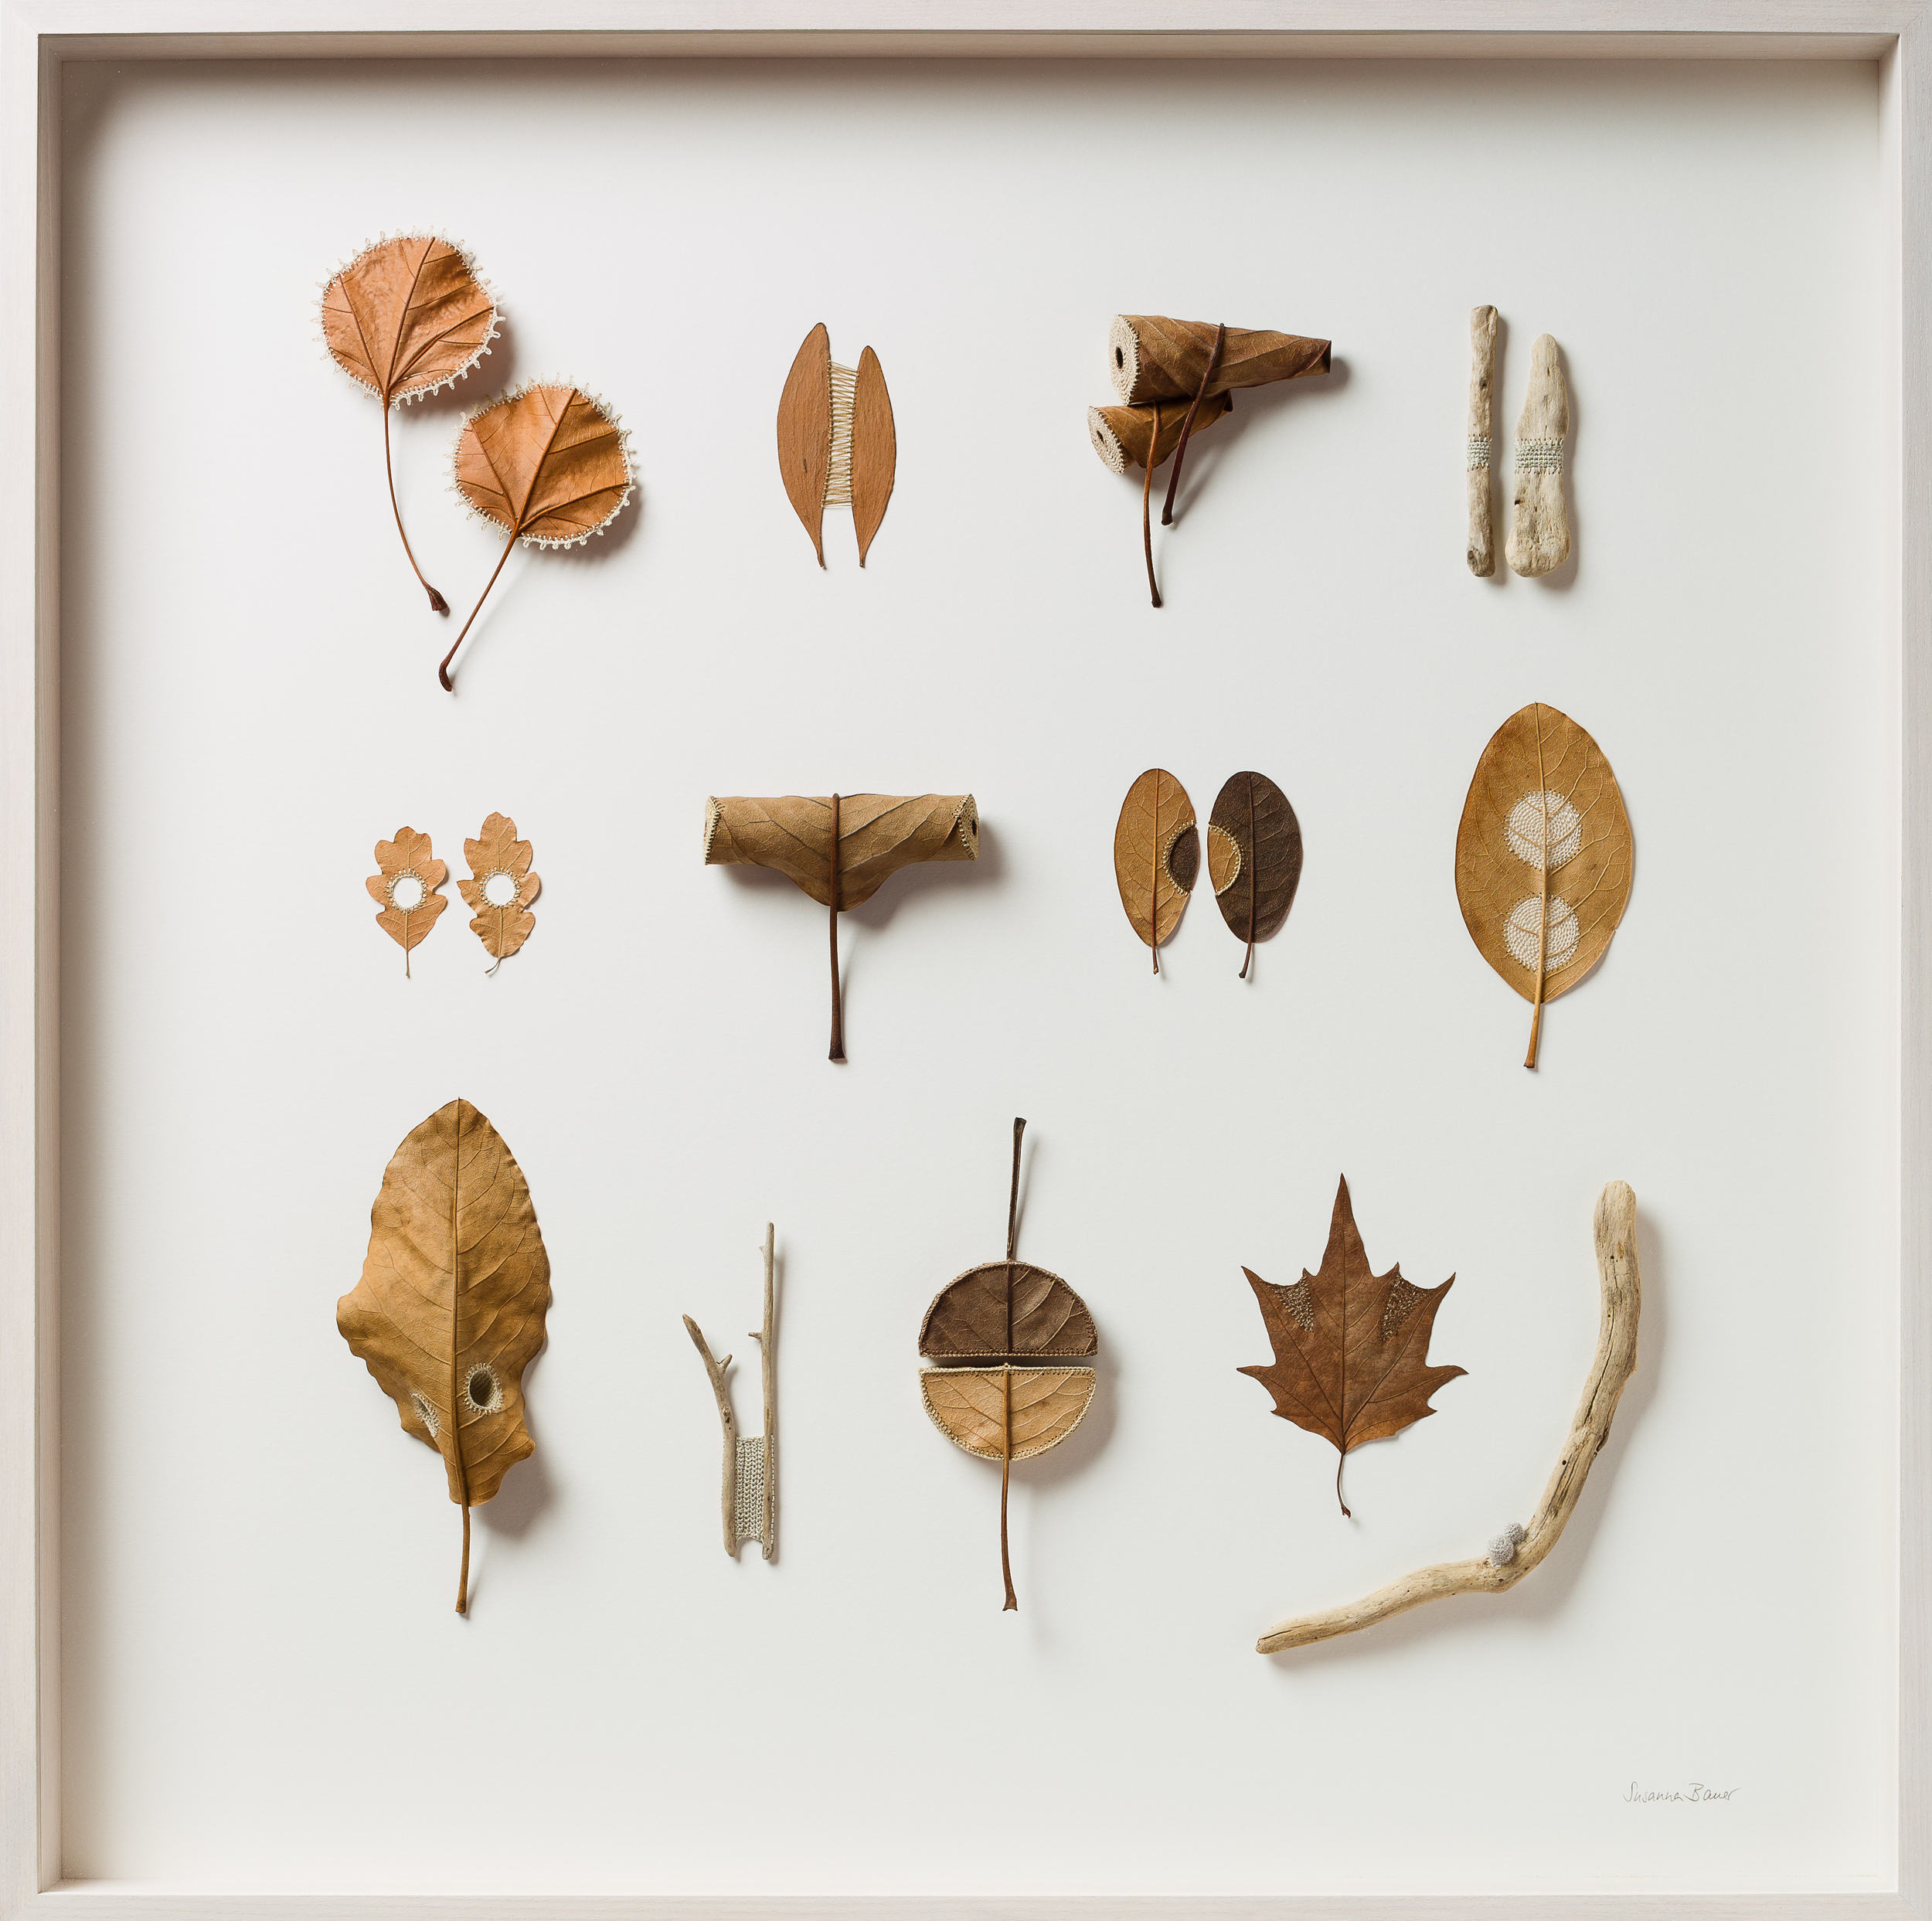 Susanna Bauer Collection - Two by Two magnolia, platanus, oak & eucalyptus leaves, wood & cotton yarn 75 x 5 x 75 cm S O L D